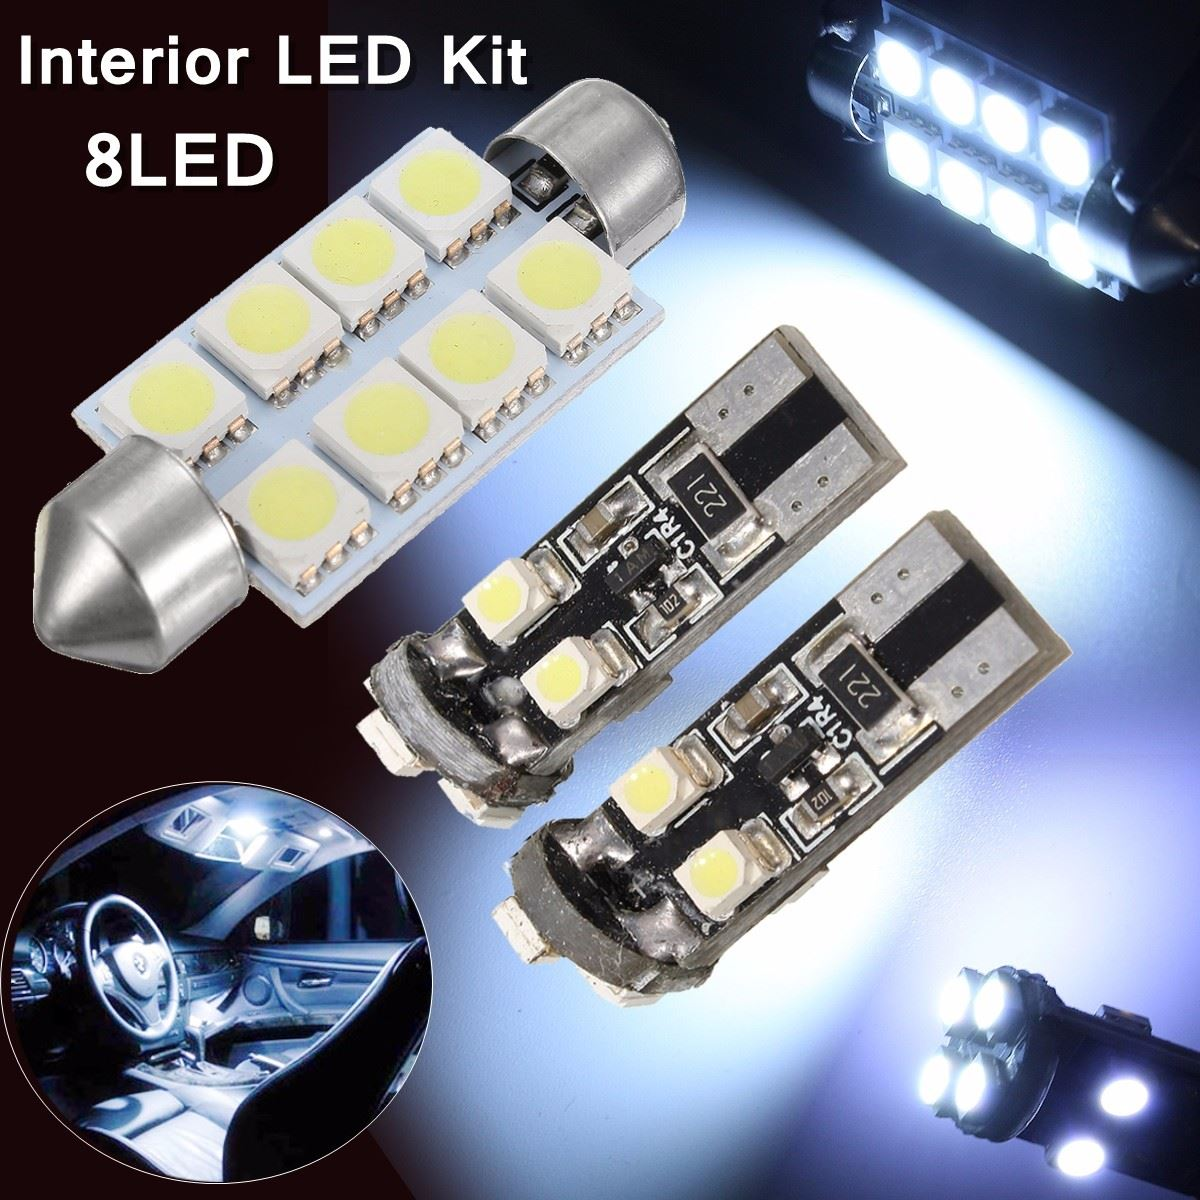 3Pcs Car Auto  LED T10 SMD 5050 W5W LED Car Side Wedge Tail Dome Reading Light Lamp Festoon Bulb For VW T5 Transporter 100pcs lot car auto led t10 5050 w5w 5 smd 194 168 led white car side wedge tail light lamp bulb 12 30m sticker on carvoiture